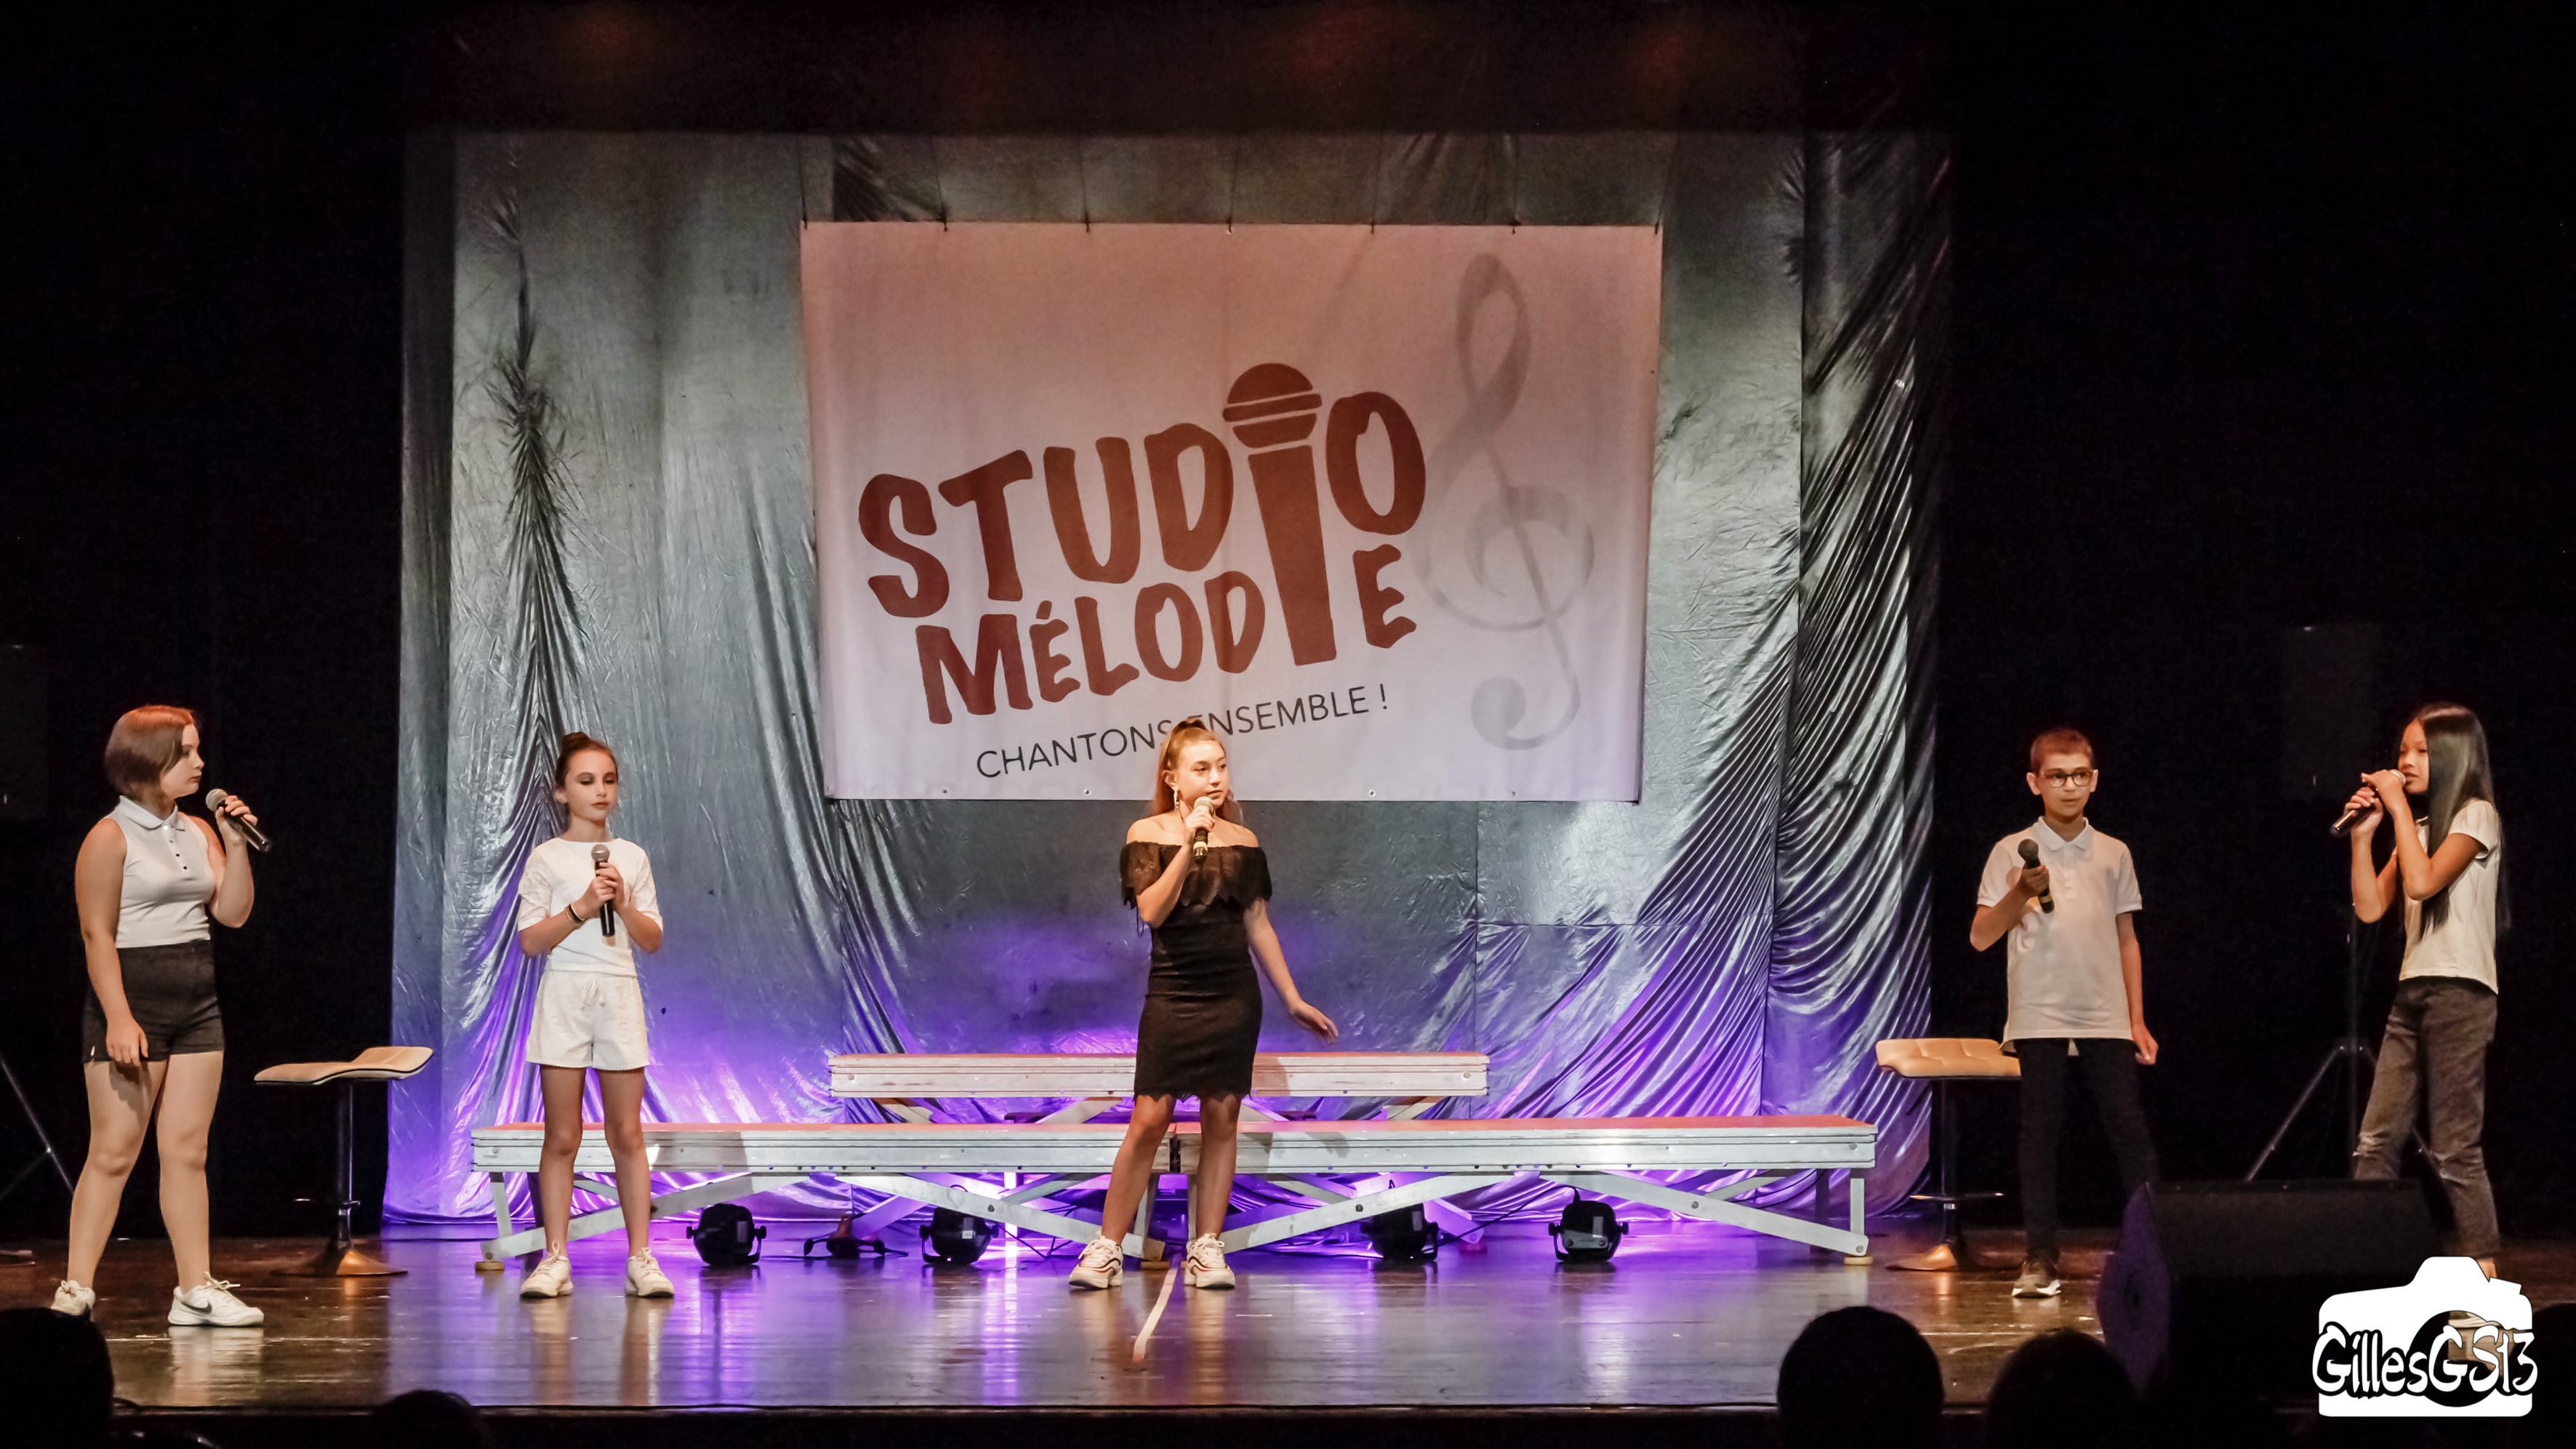 2019 06 01_STUDIO MELODIE_Spectacle 1_064